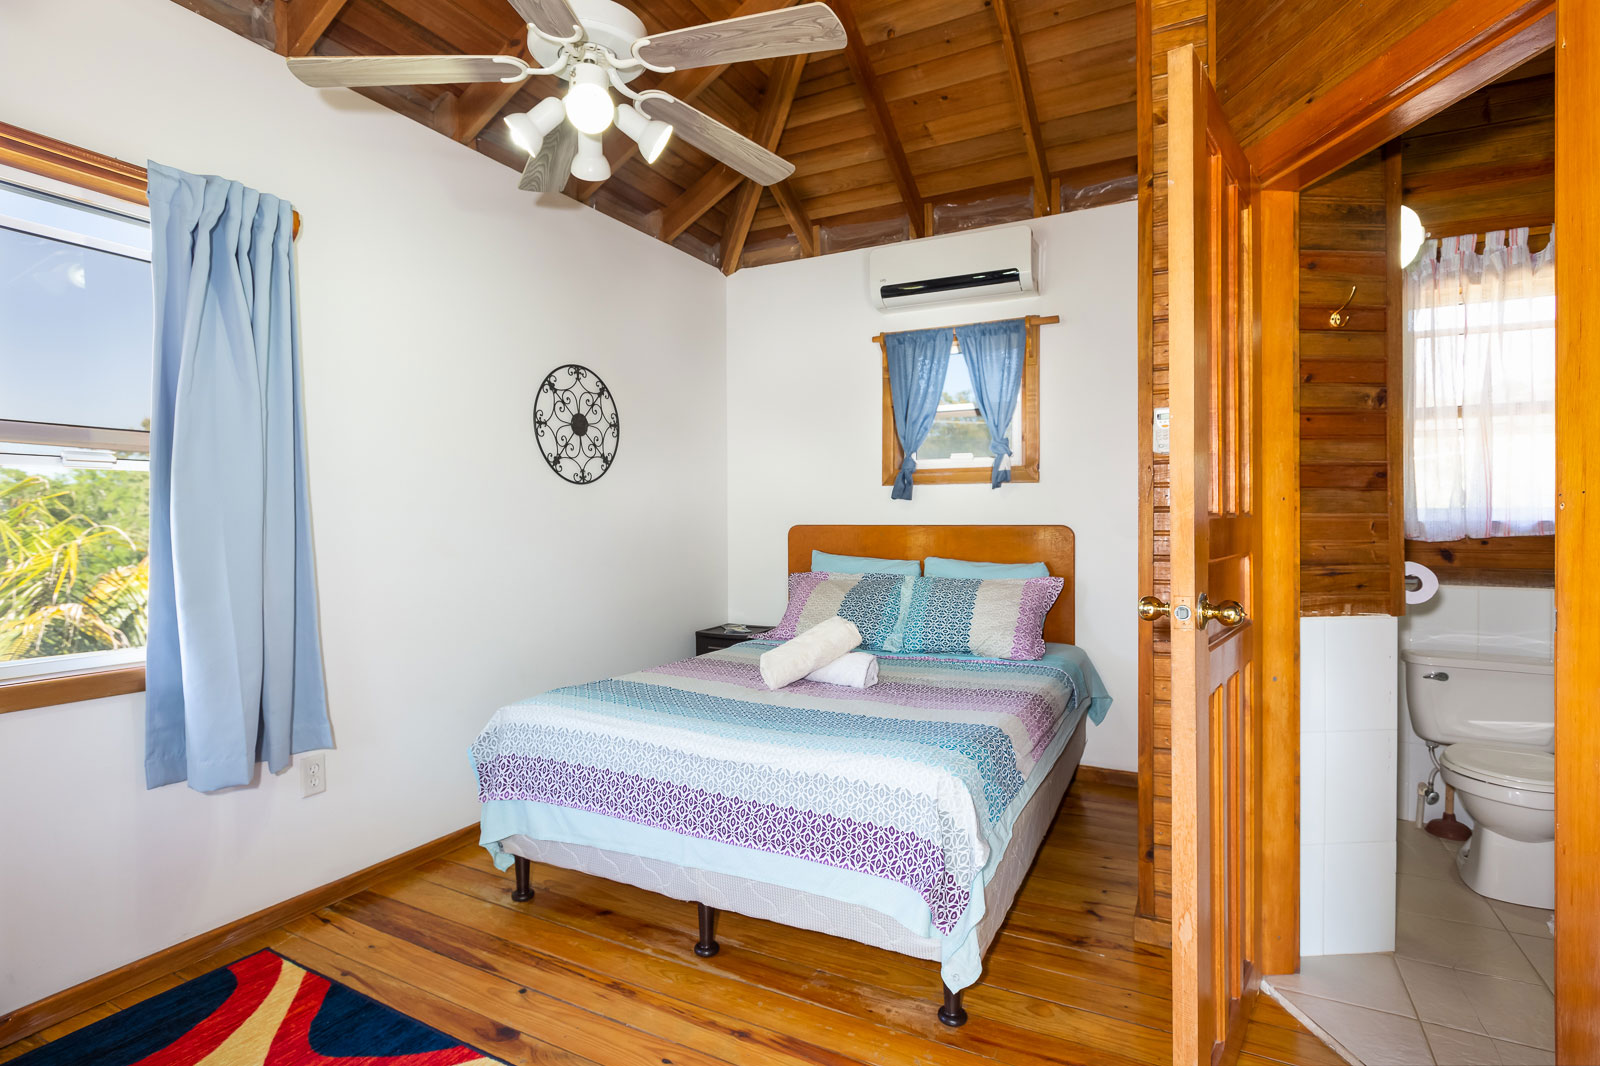 https://secureservercdn.net/166.62.111.174/170.2f8.myftpupload.com/wp-content/uploads/2020/02/places-to-stay-in-roatan.jpg?time=1606319057